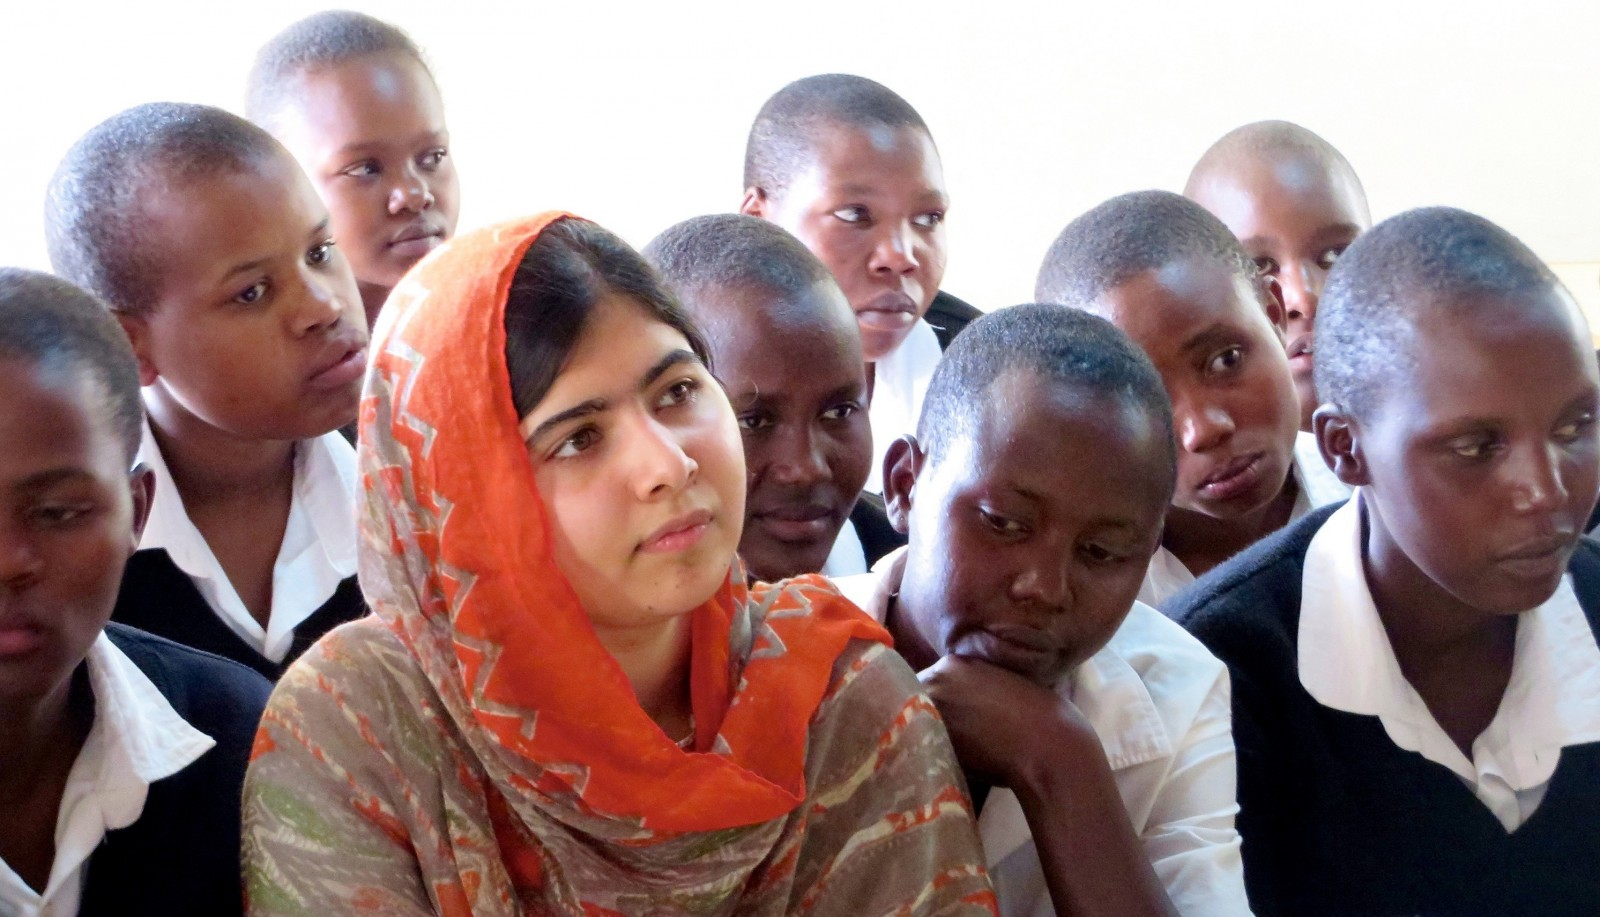 Malala Yousafzai is the subject of the film 'He Named Me Malala.'